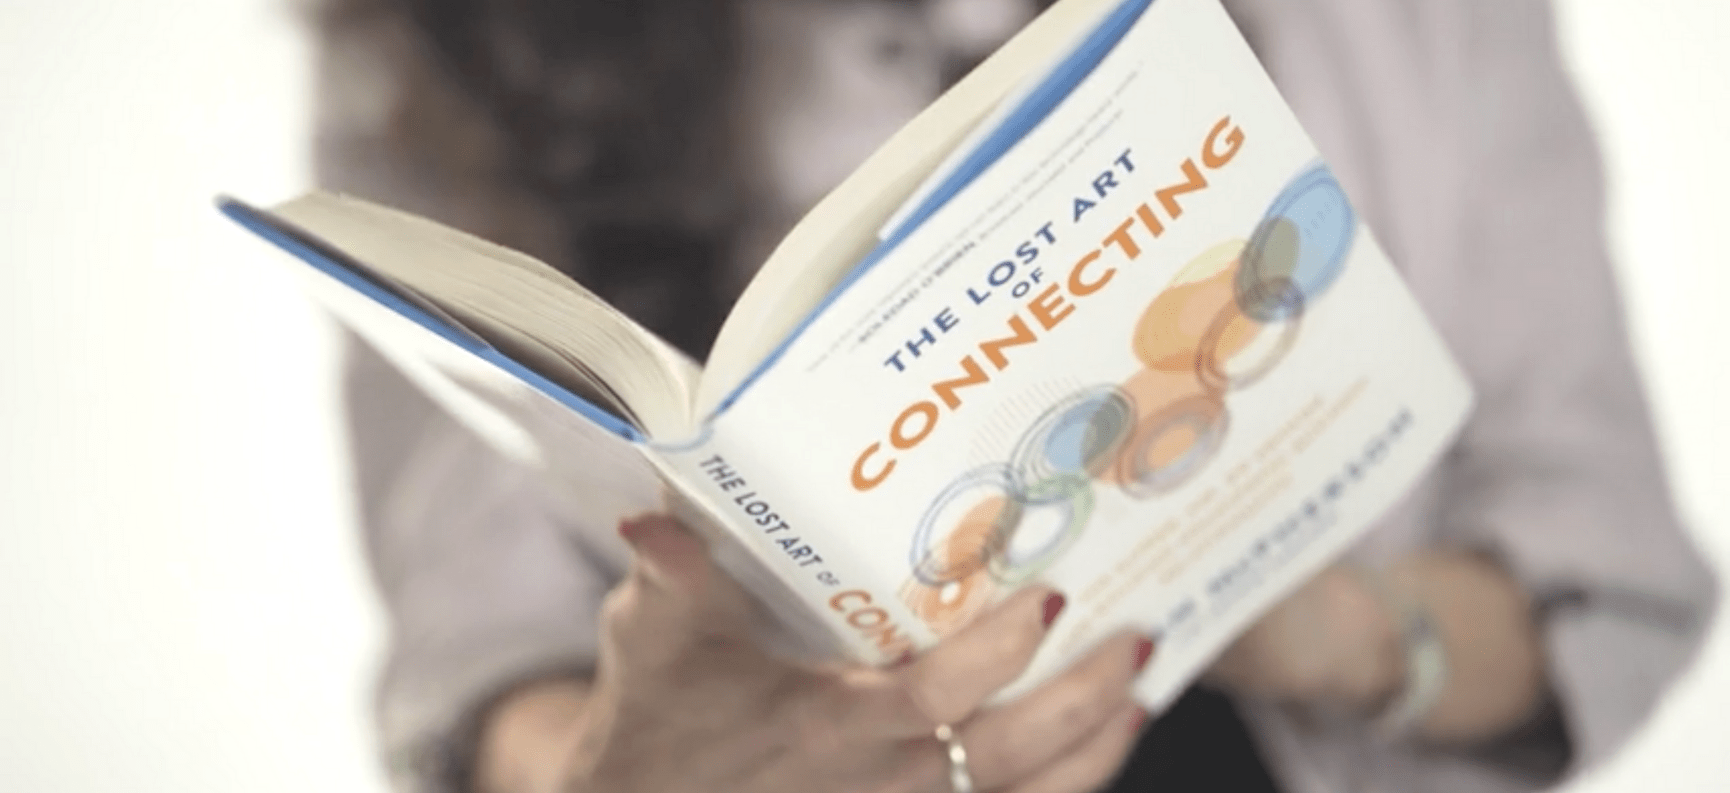 Book Jacket, The Lost Art of Connecting